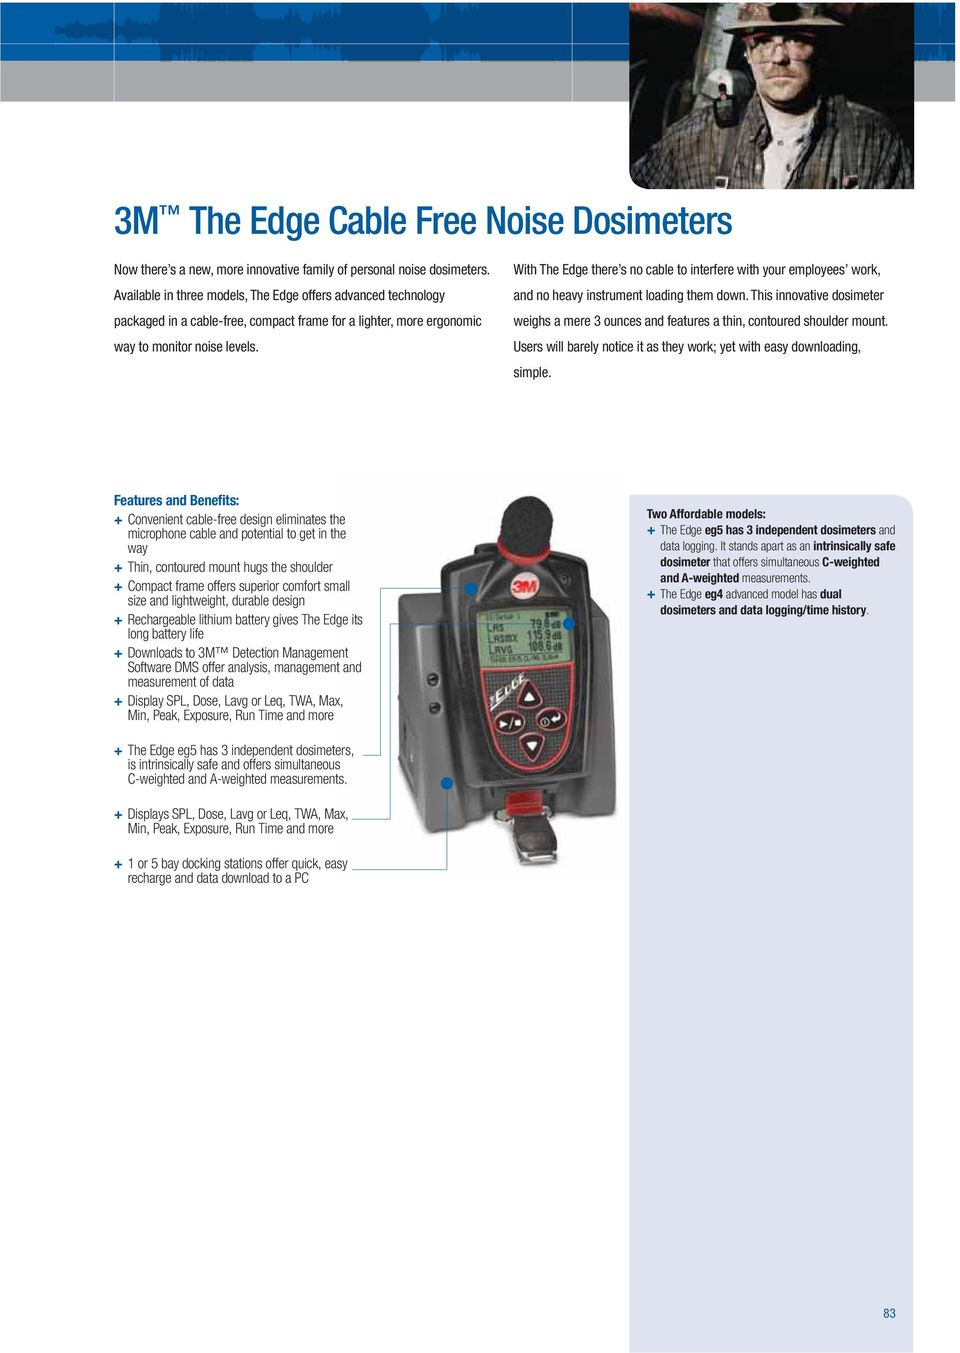 With The Edge there s no cable to interfere with your employees work, and no heavy instrument loading them down.